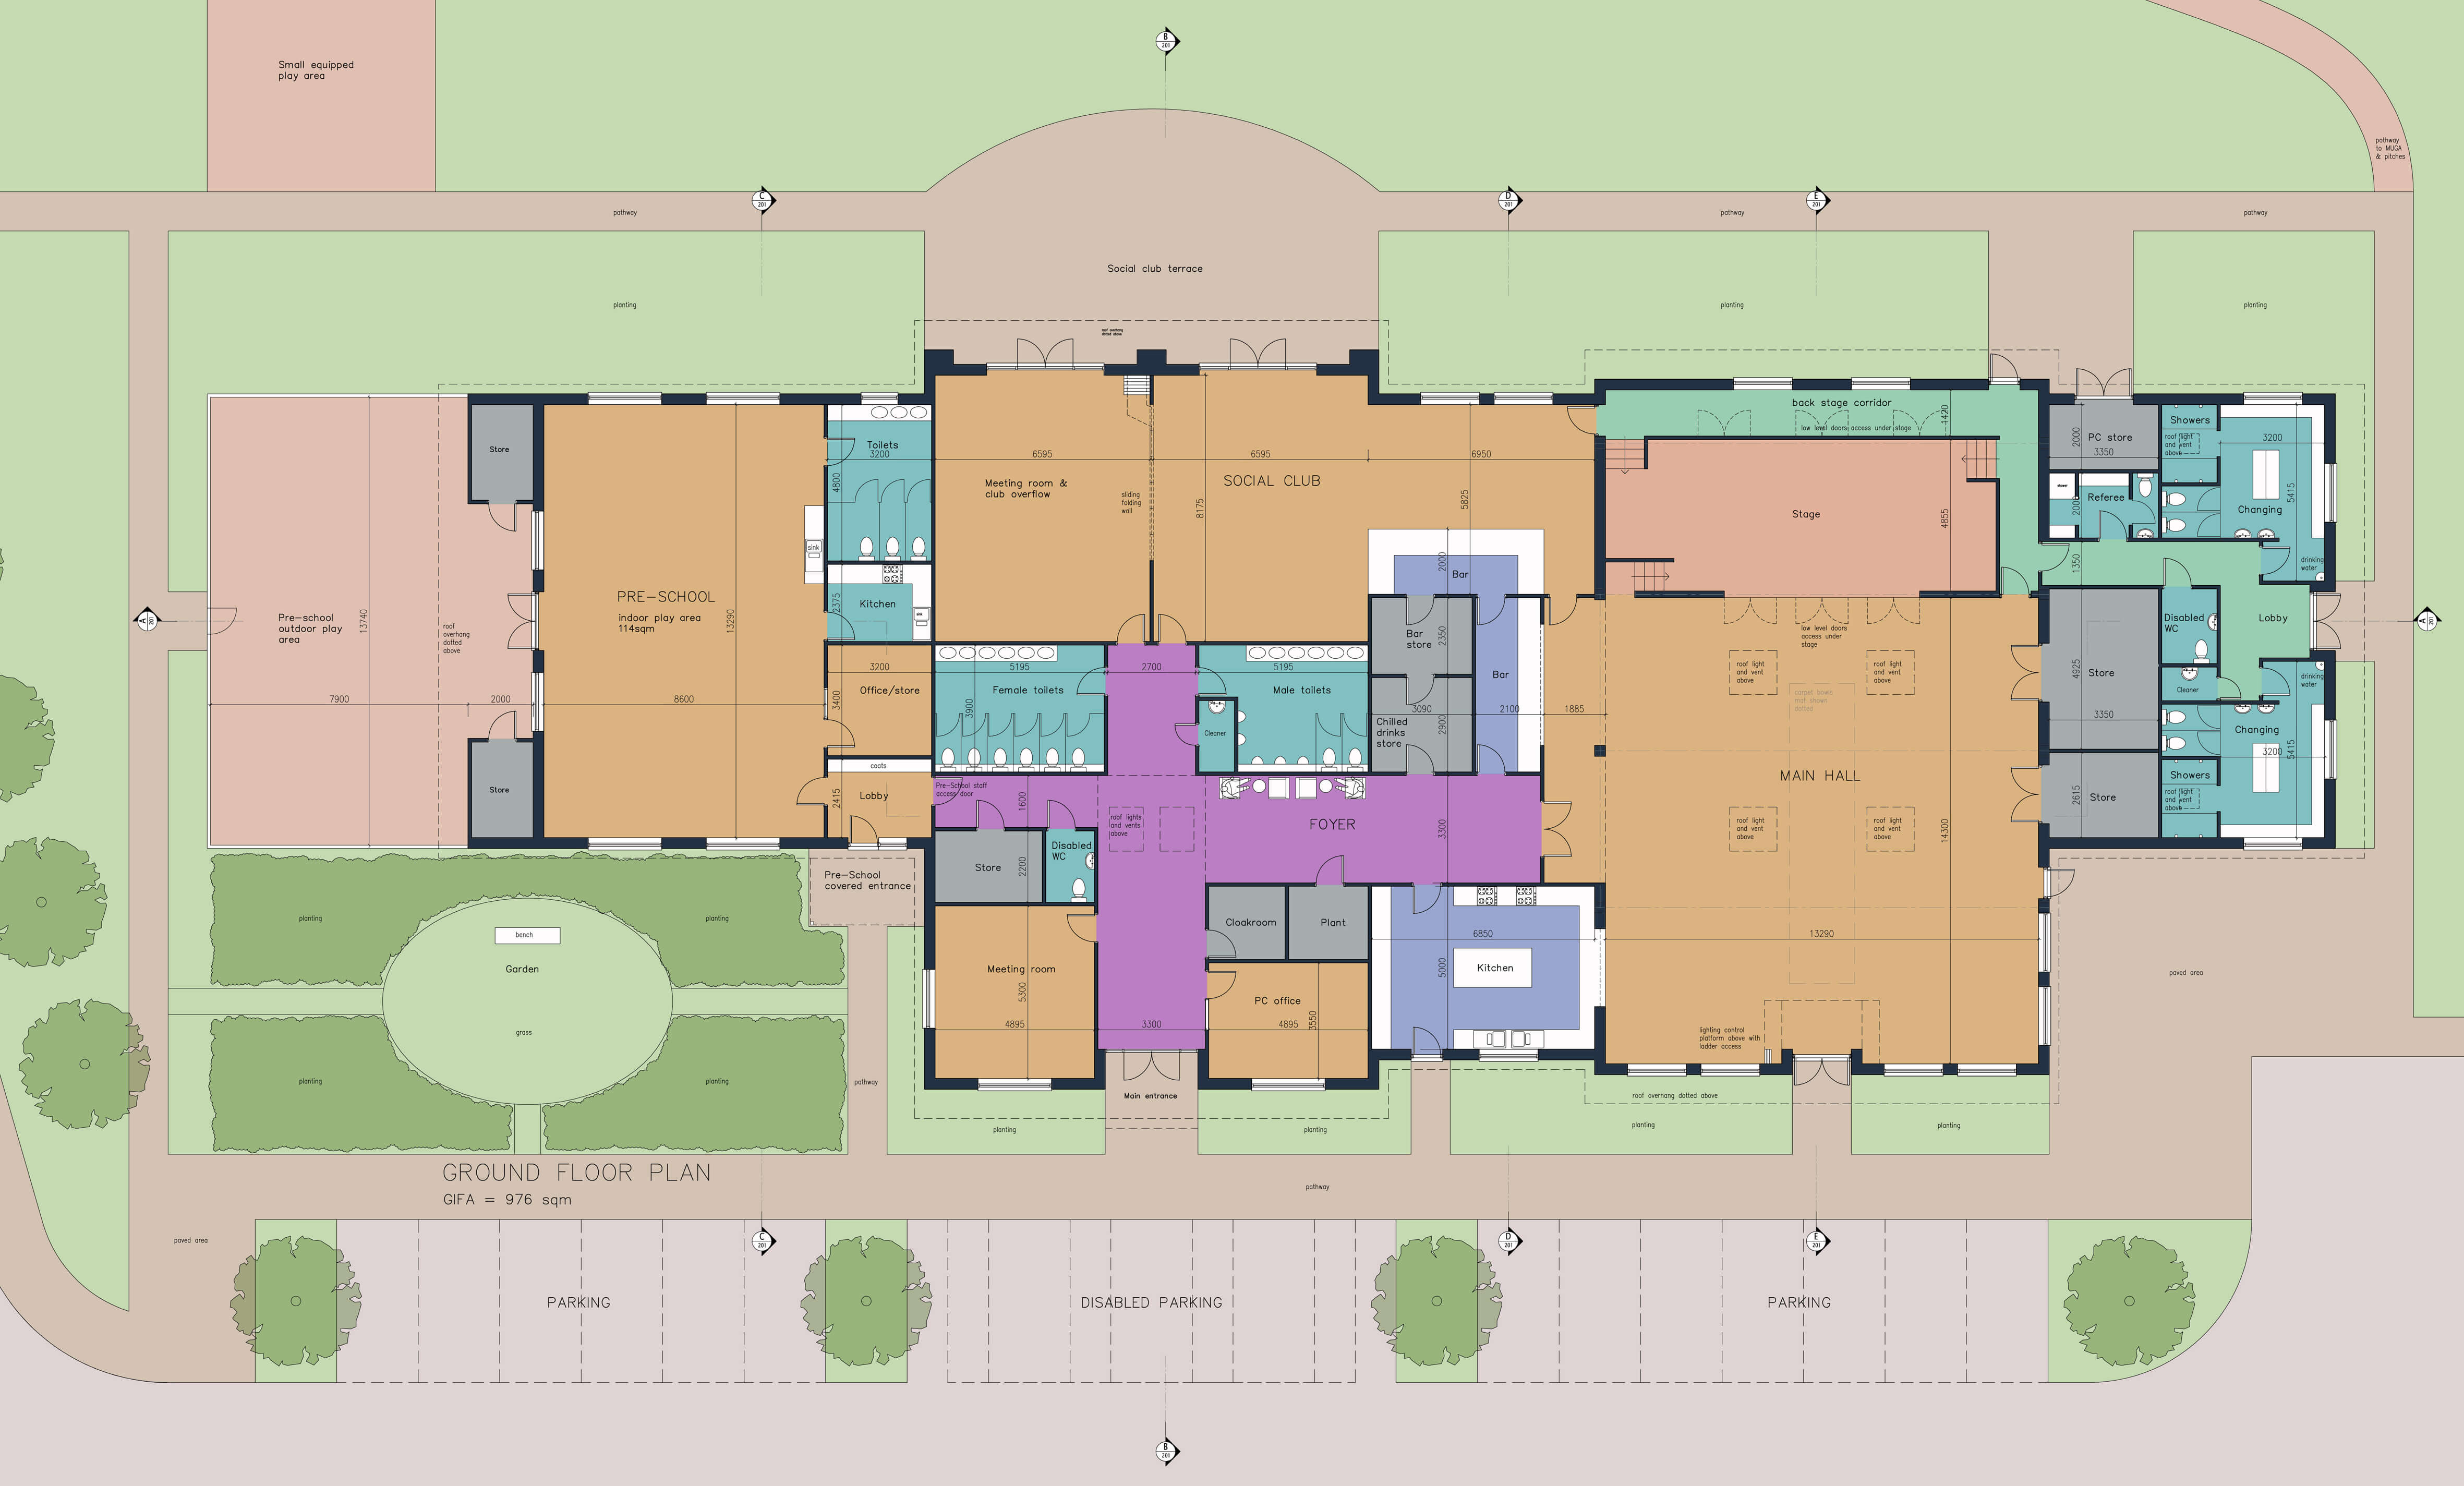 D:DocsJW Projects1513 Meppershall5.1 drawings1513Plans 250